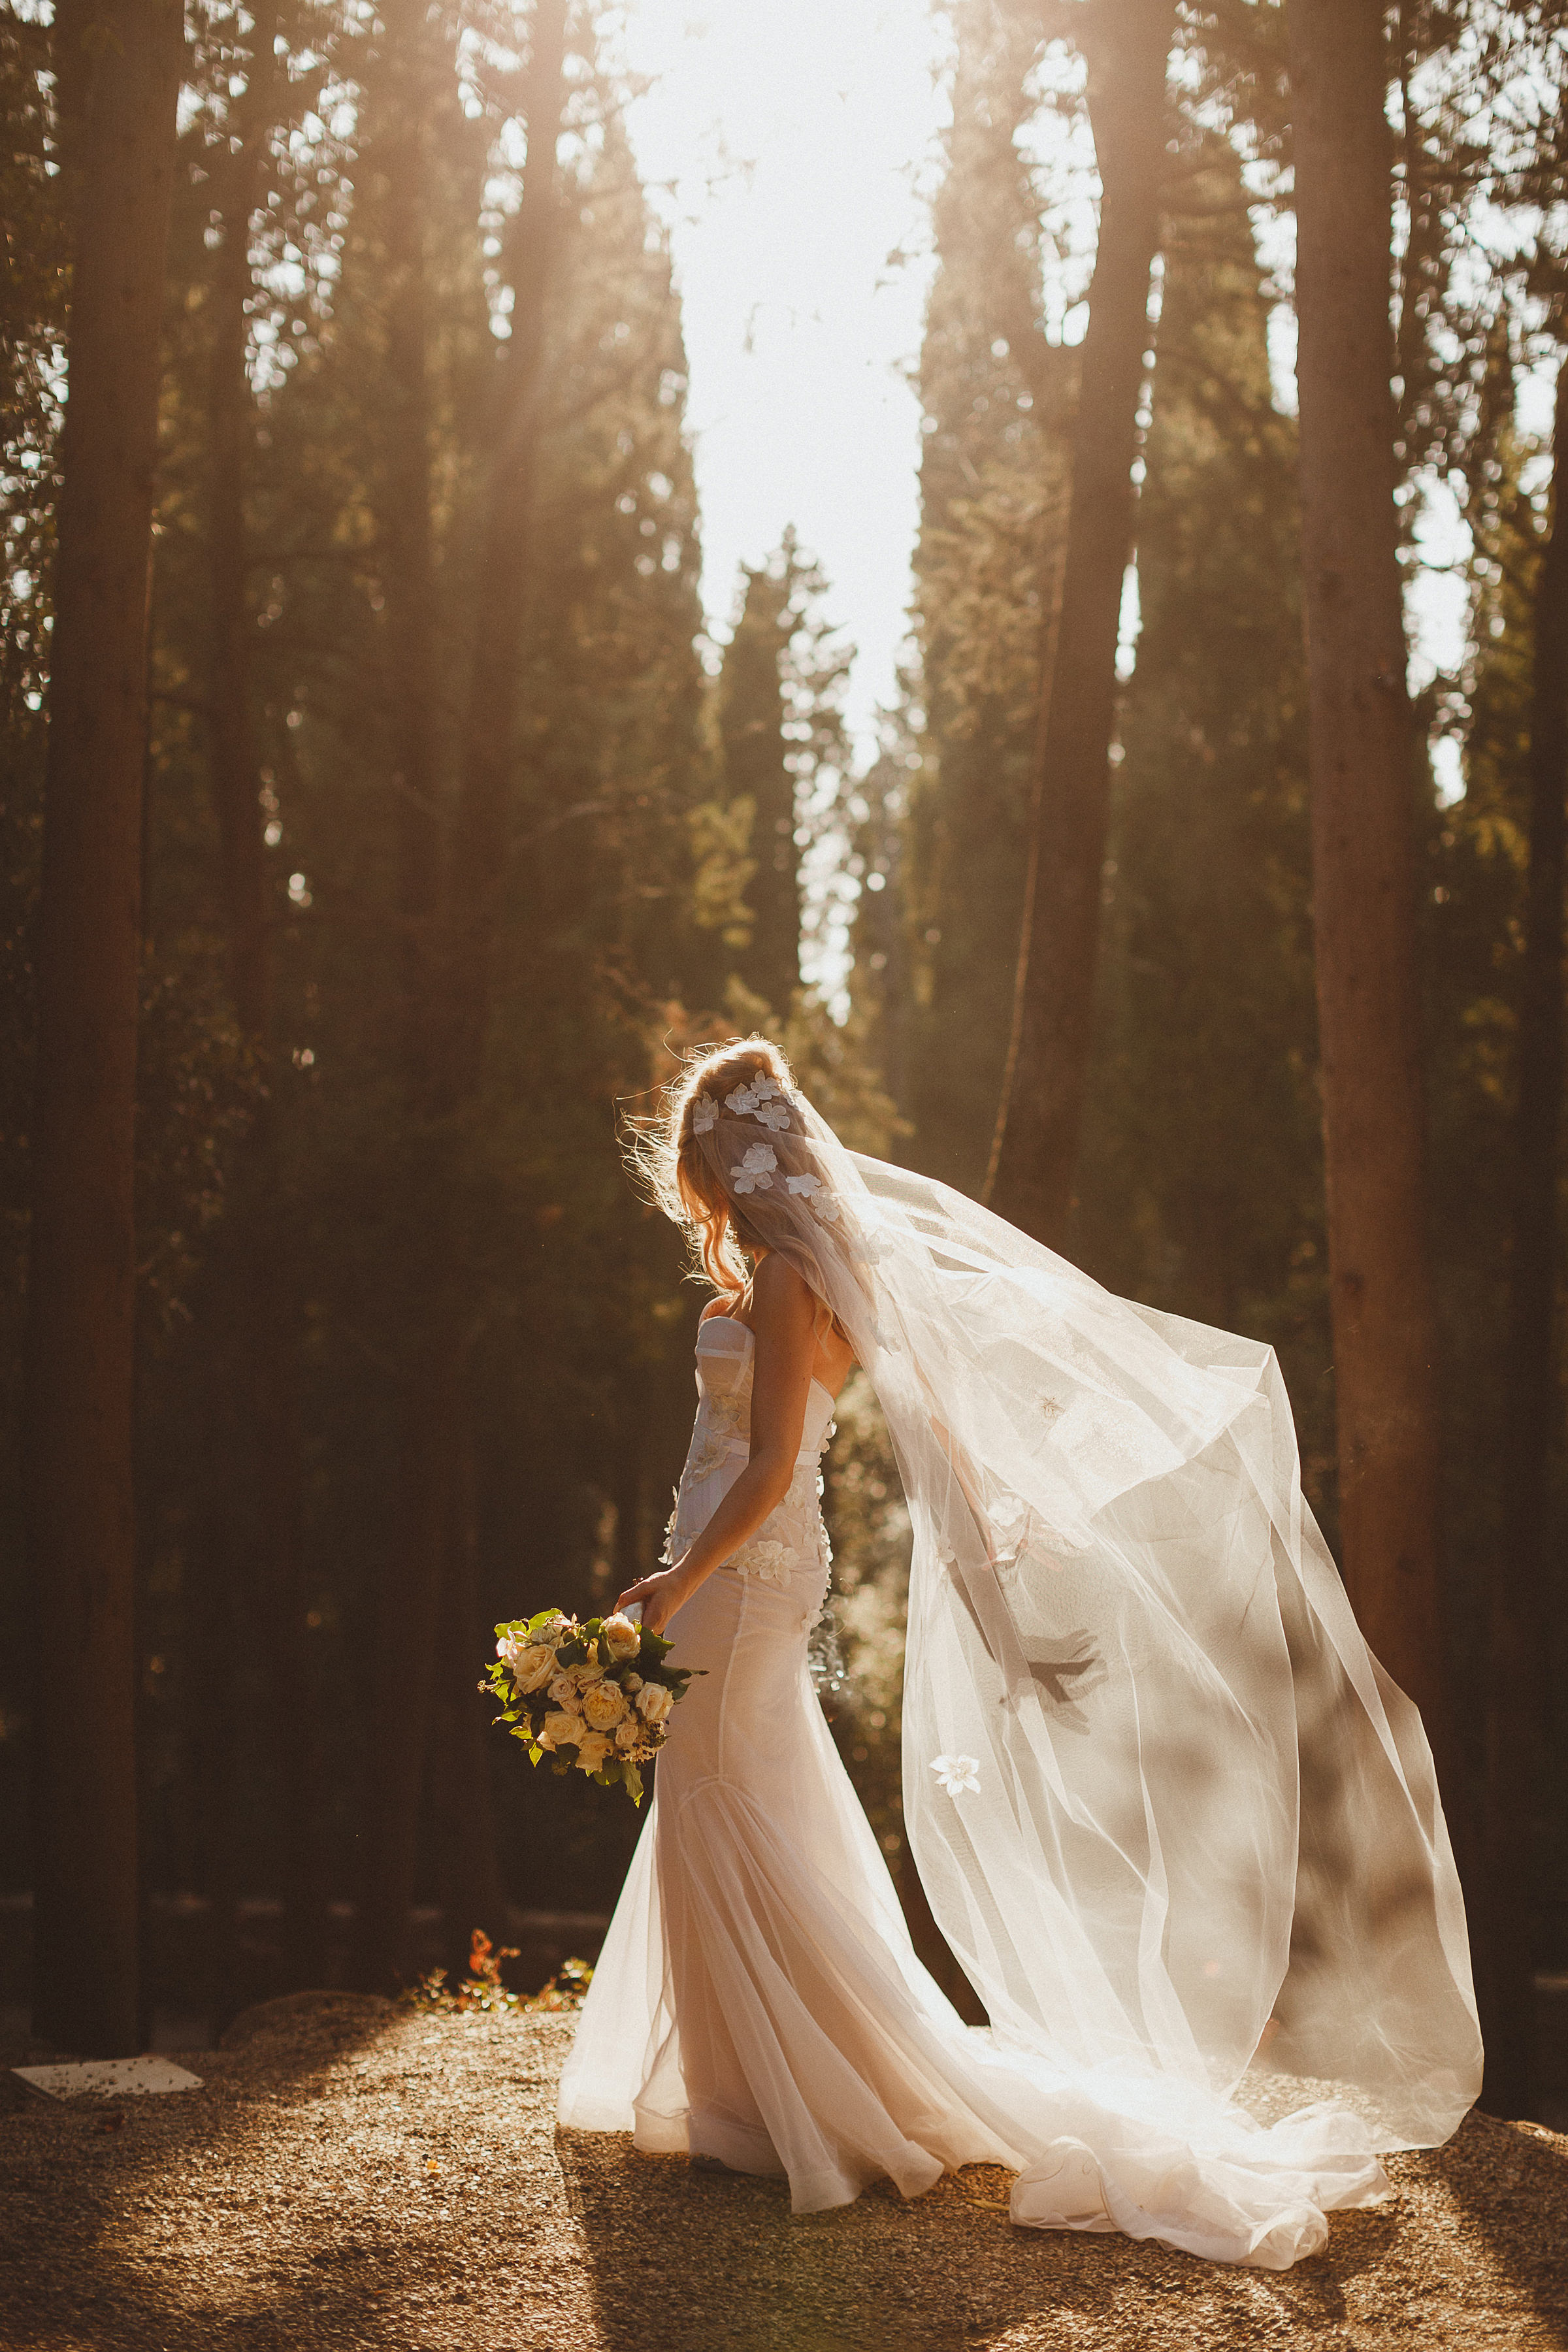 Bride with flowing veil against trees - photo by Ed Peers Photography